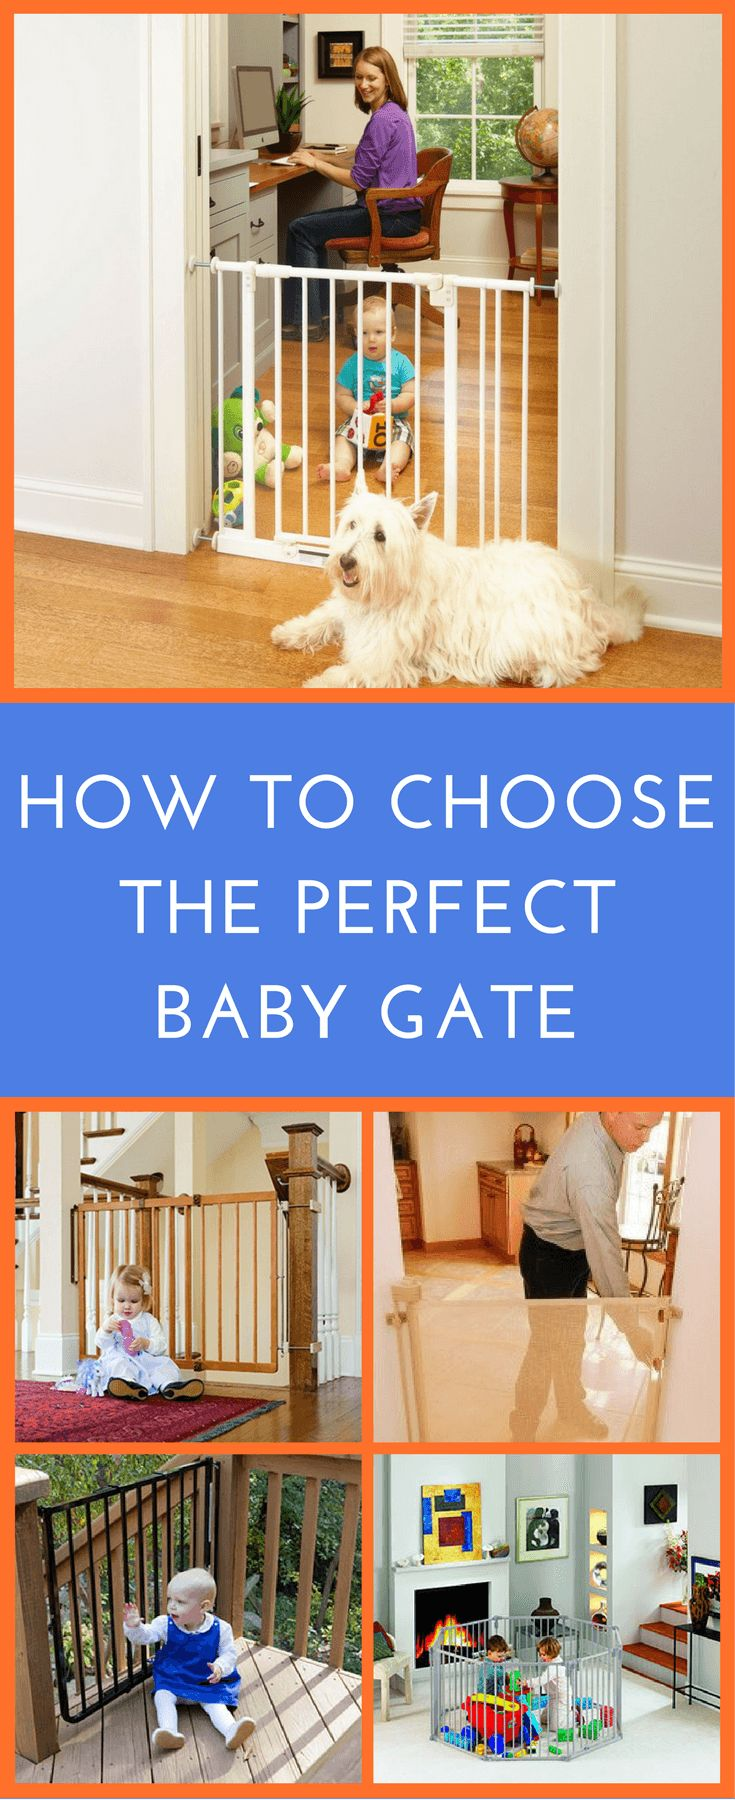 Don't assume that all baby gates are made equal. It is important to avoid any that are unstable, too short, or have potential footholds that a child could use to climb over.   If a gate is not designed well, it can actually be more of a danger than a safety item! Find out in this page for answer of how to choose the best baby gates for a safe home